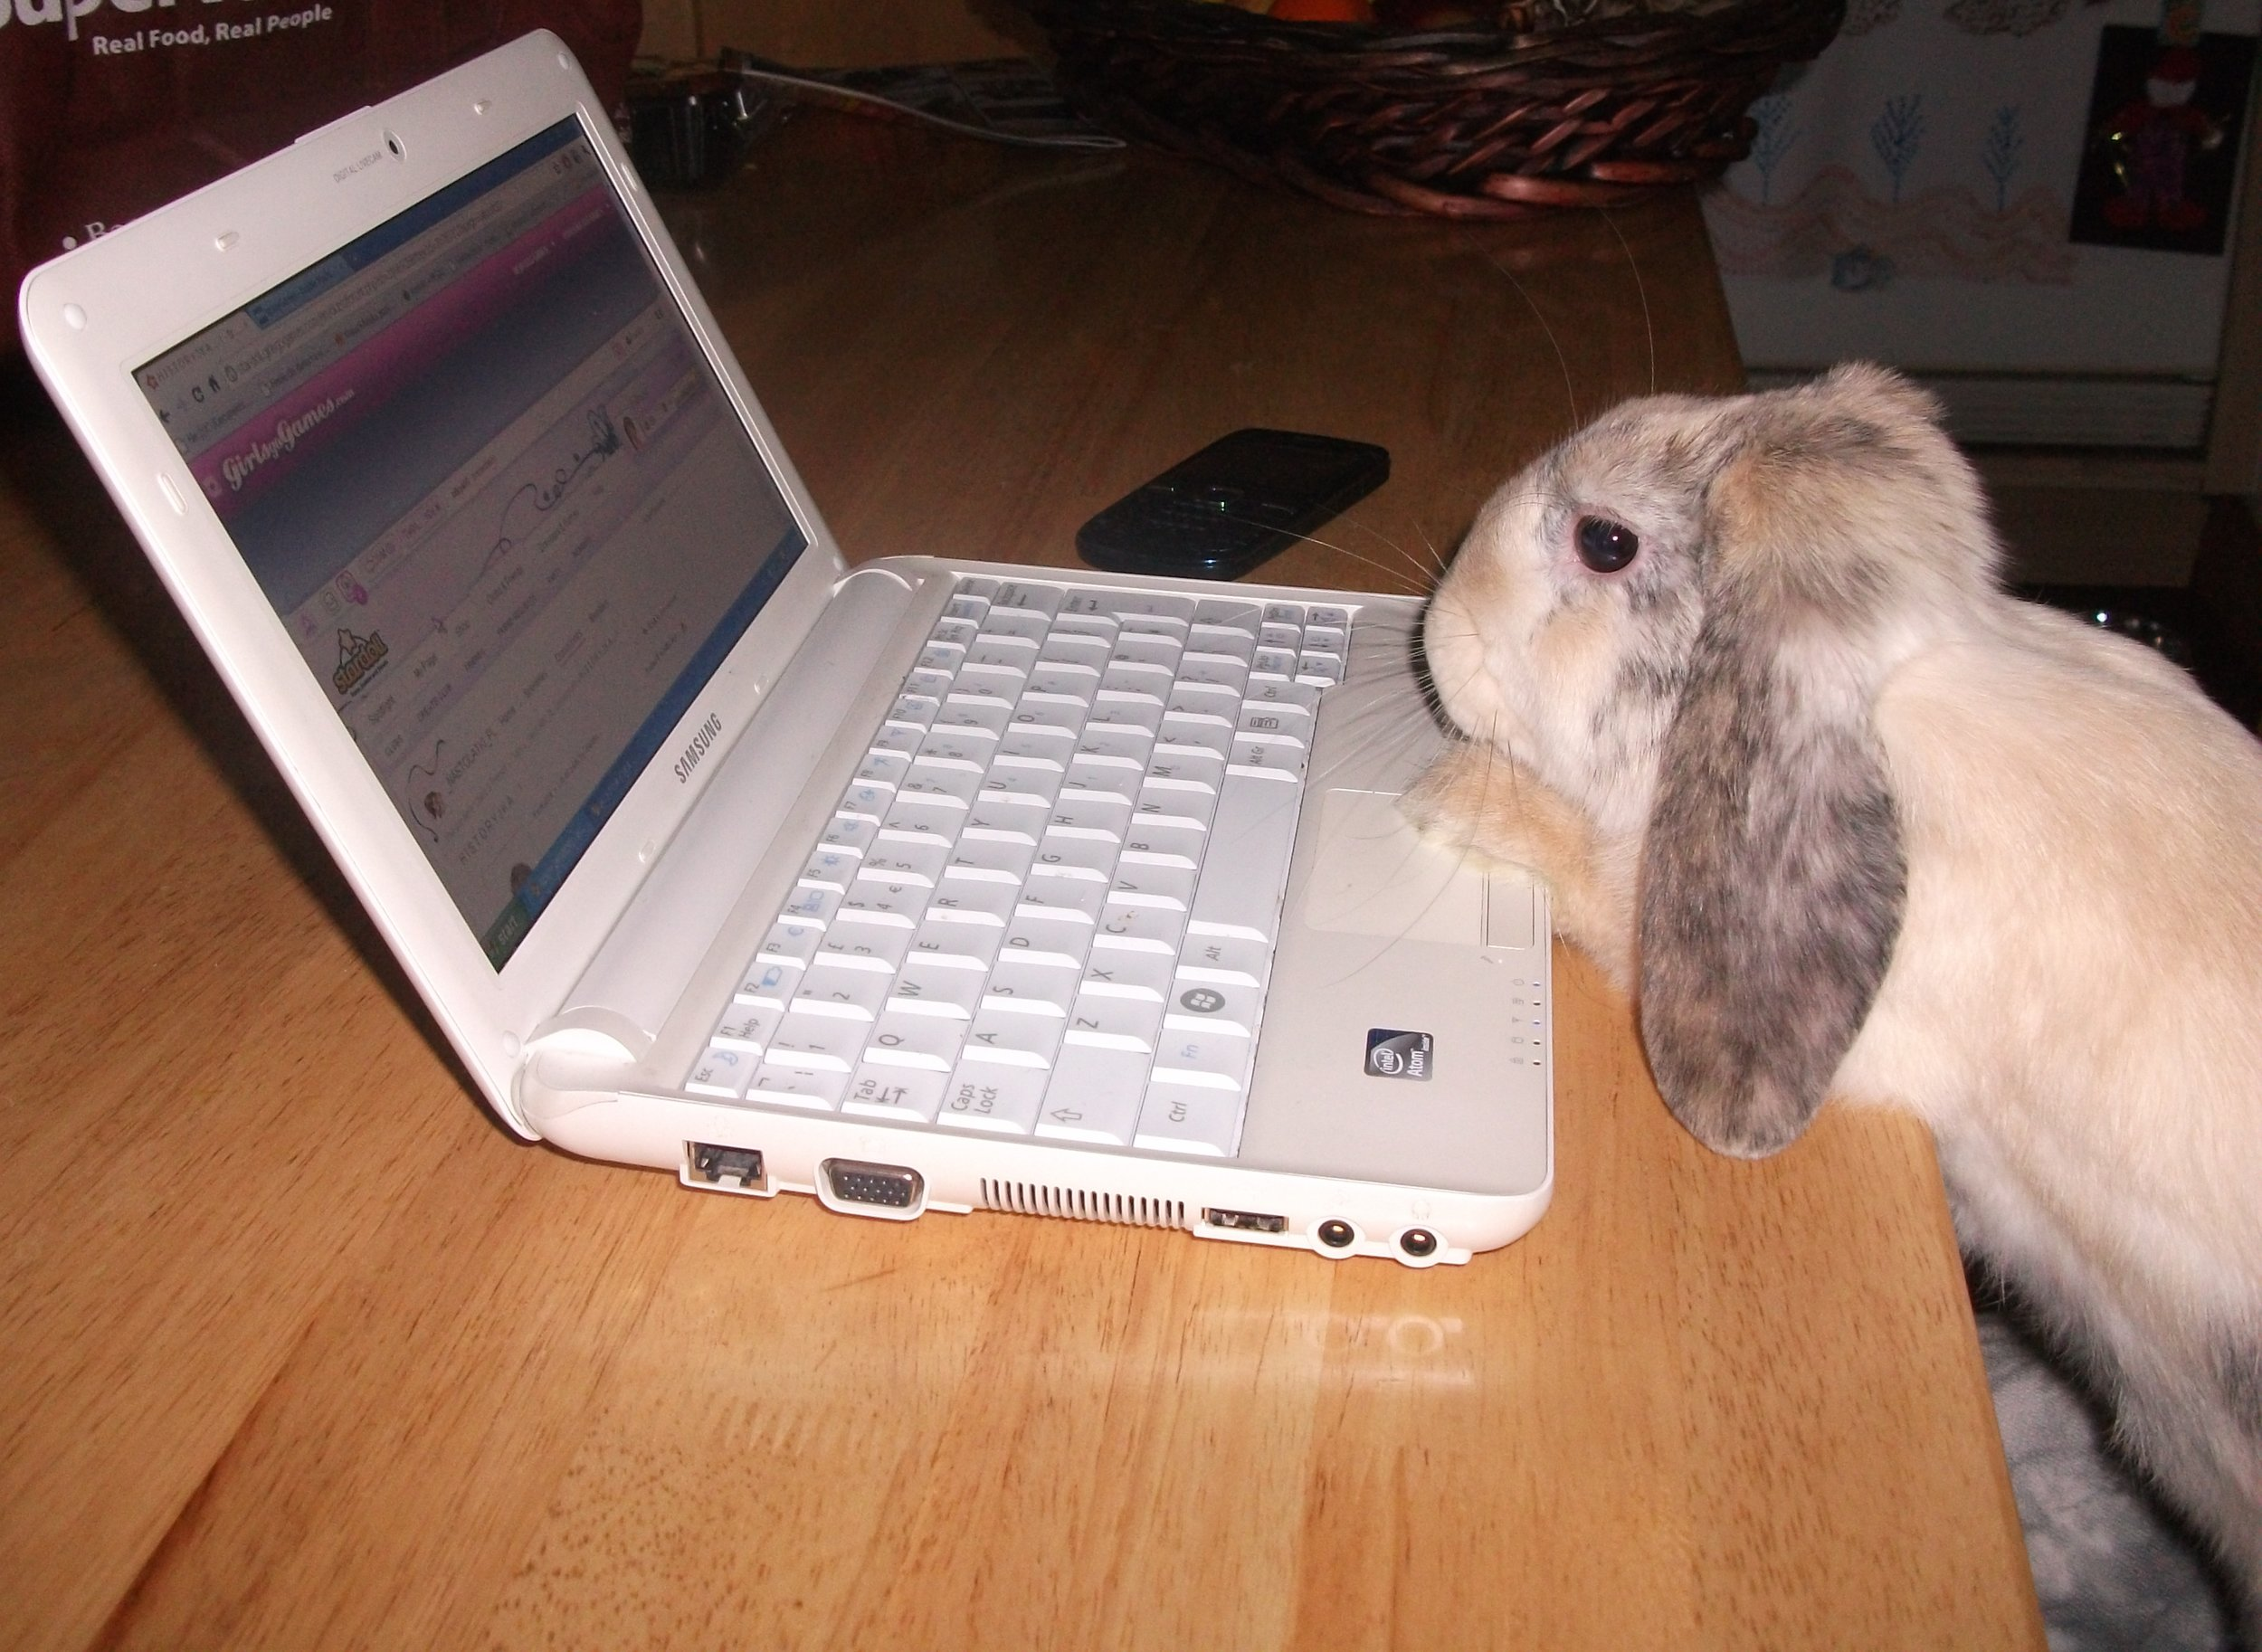 Hmm... Now, How Can I Order Carrots on This Thing?